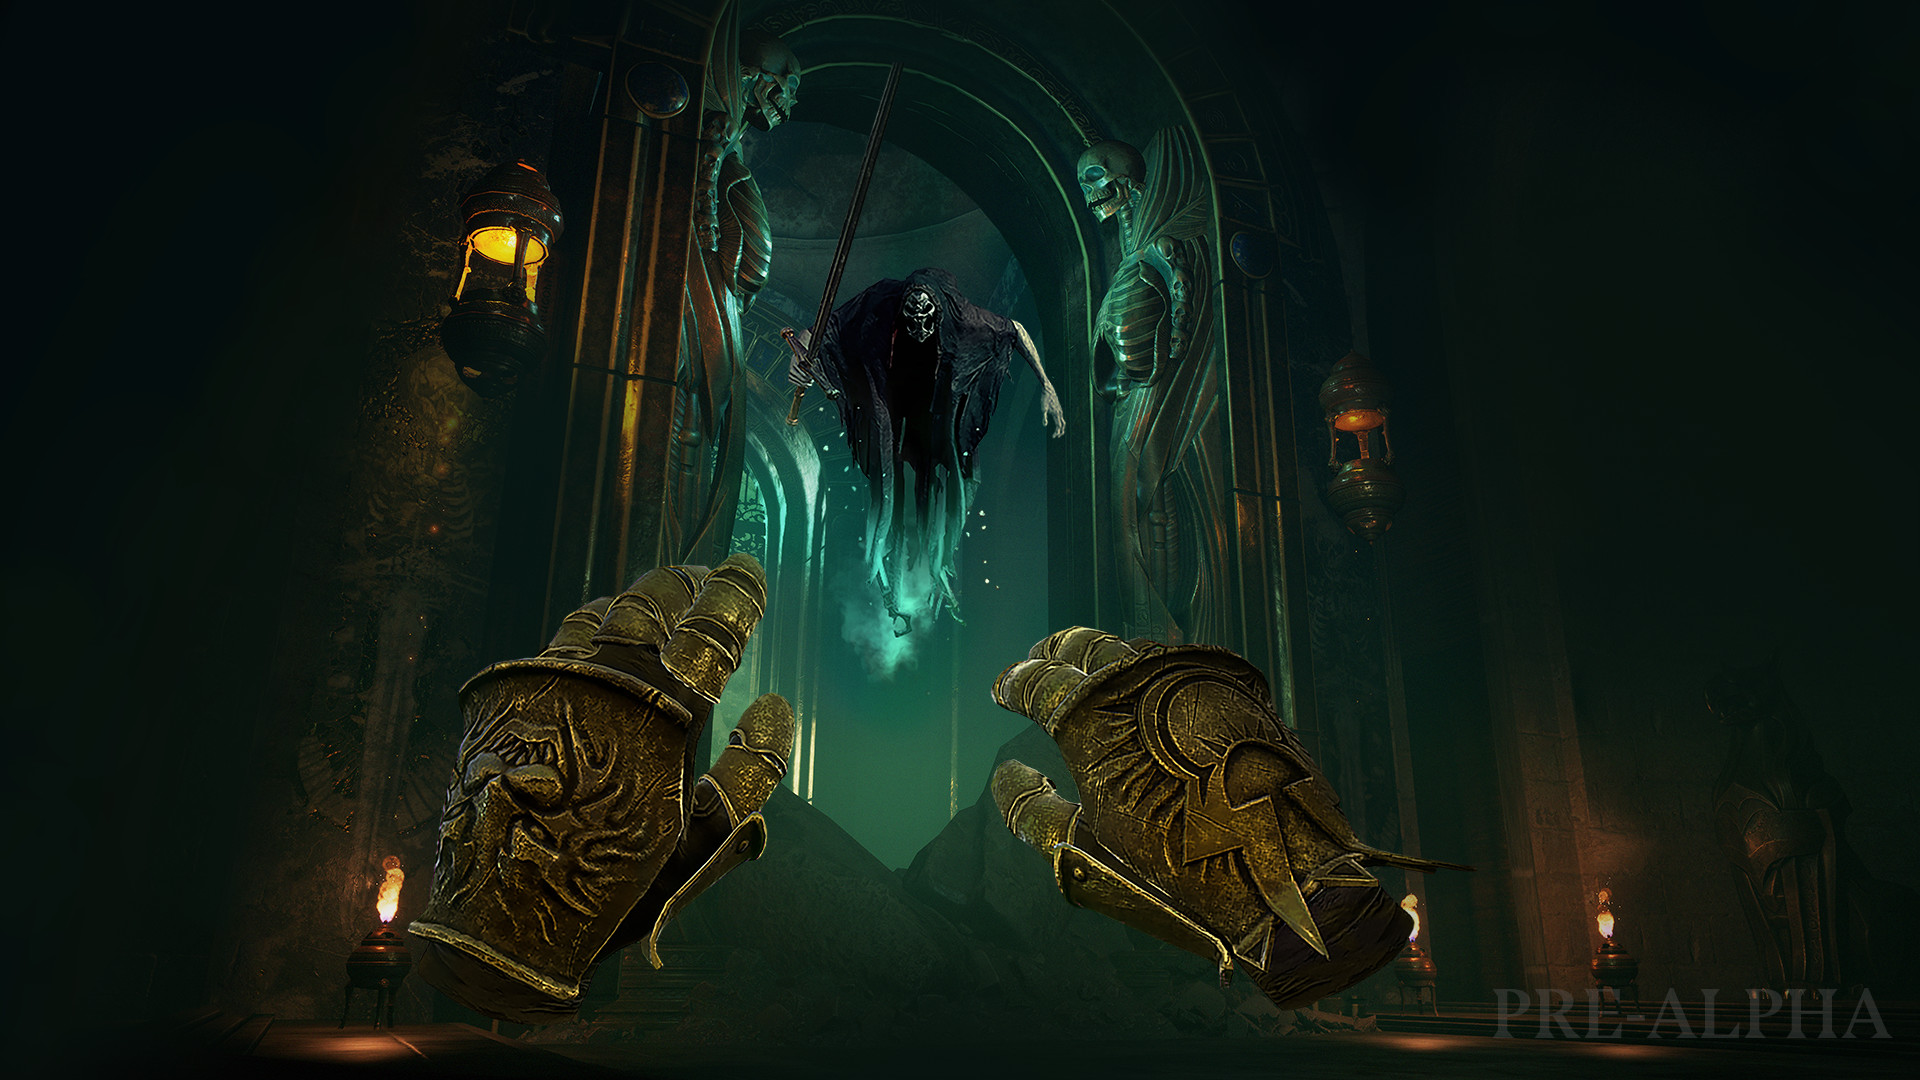 Warhammer Age of Sigmar: Tempestfall Coming to PC VR & Oculus Quest in 2021